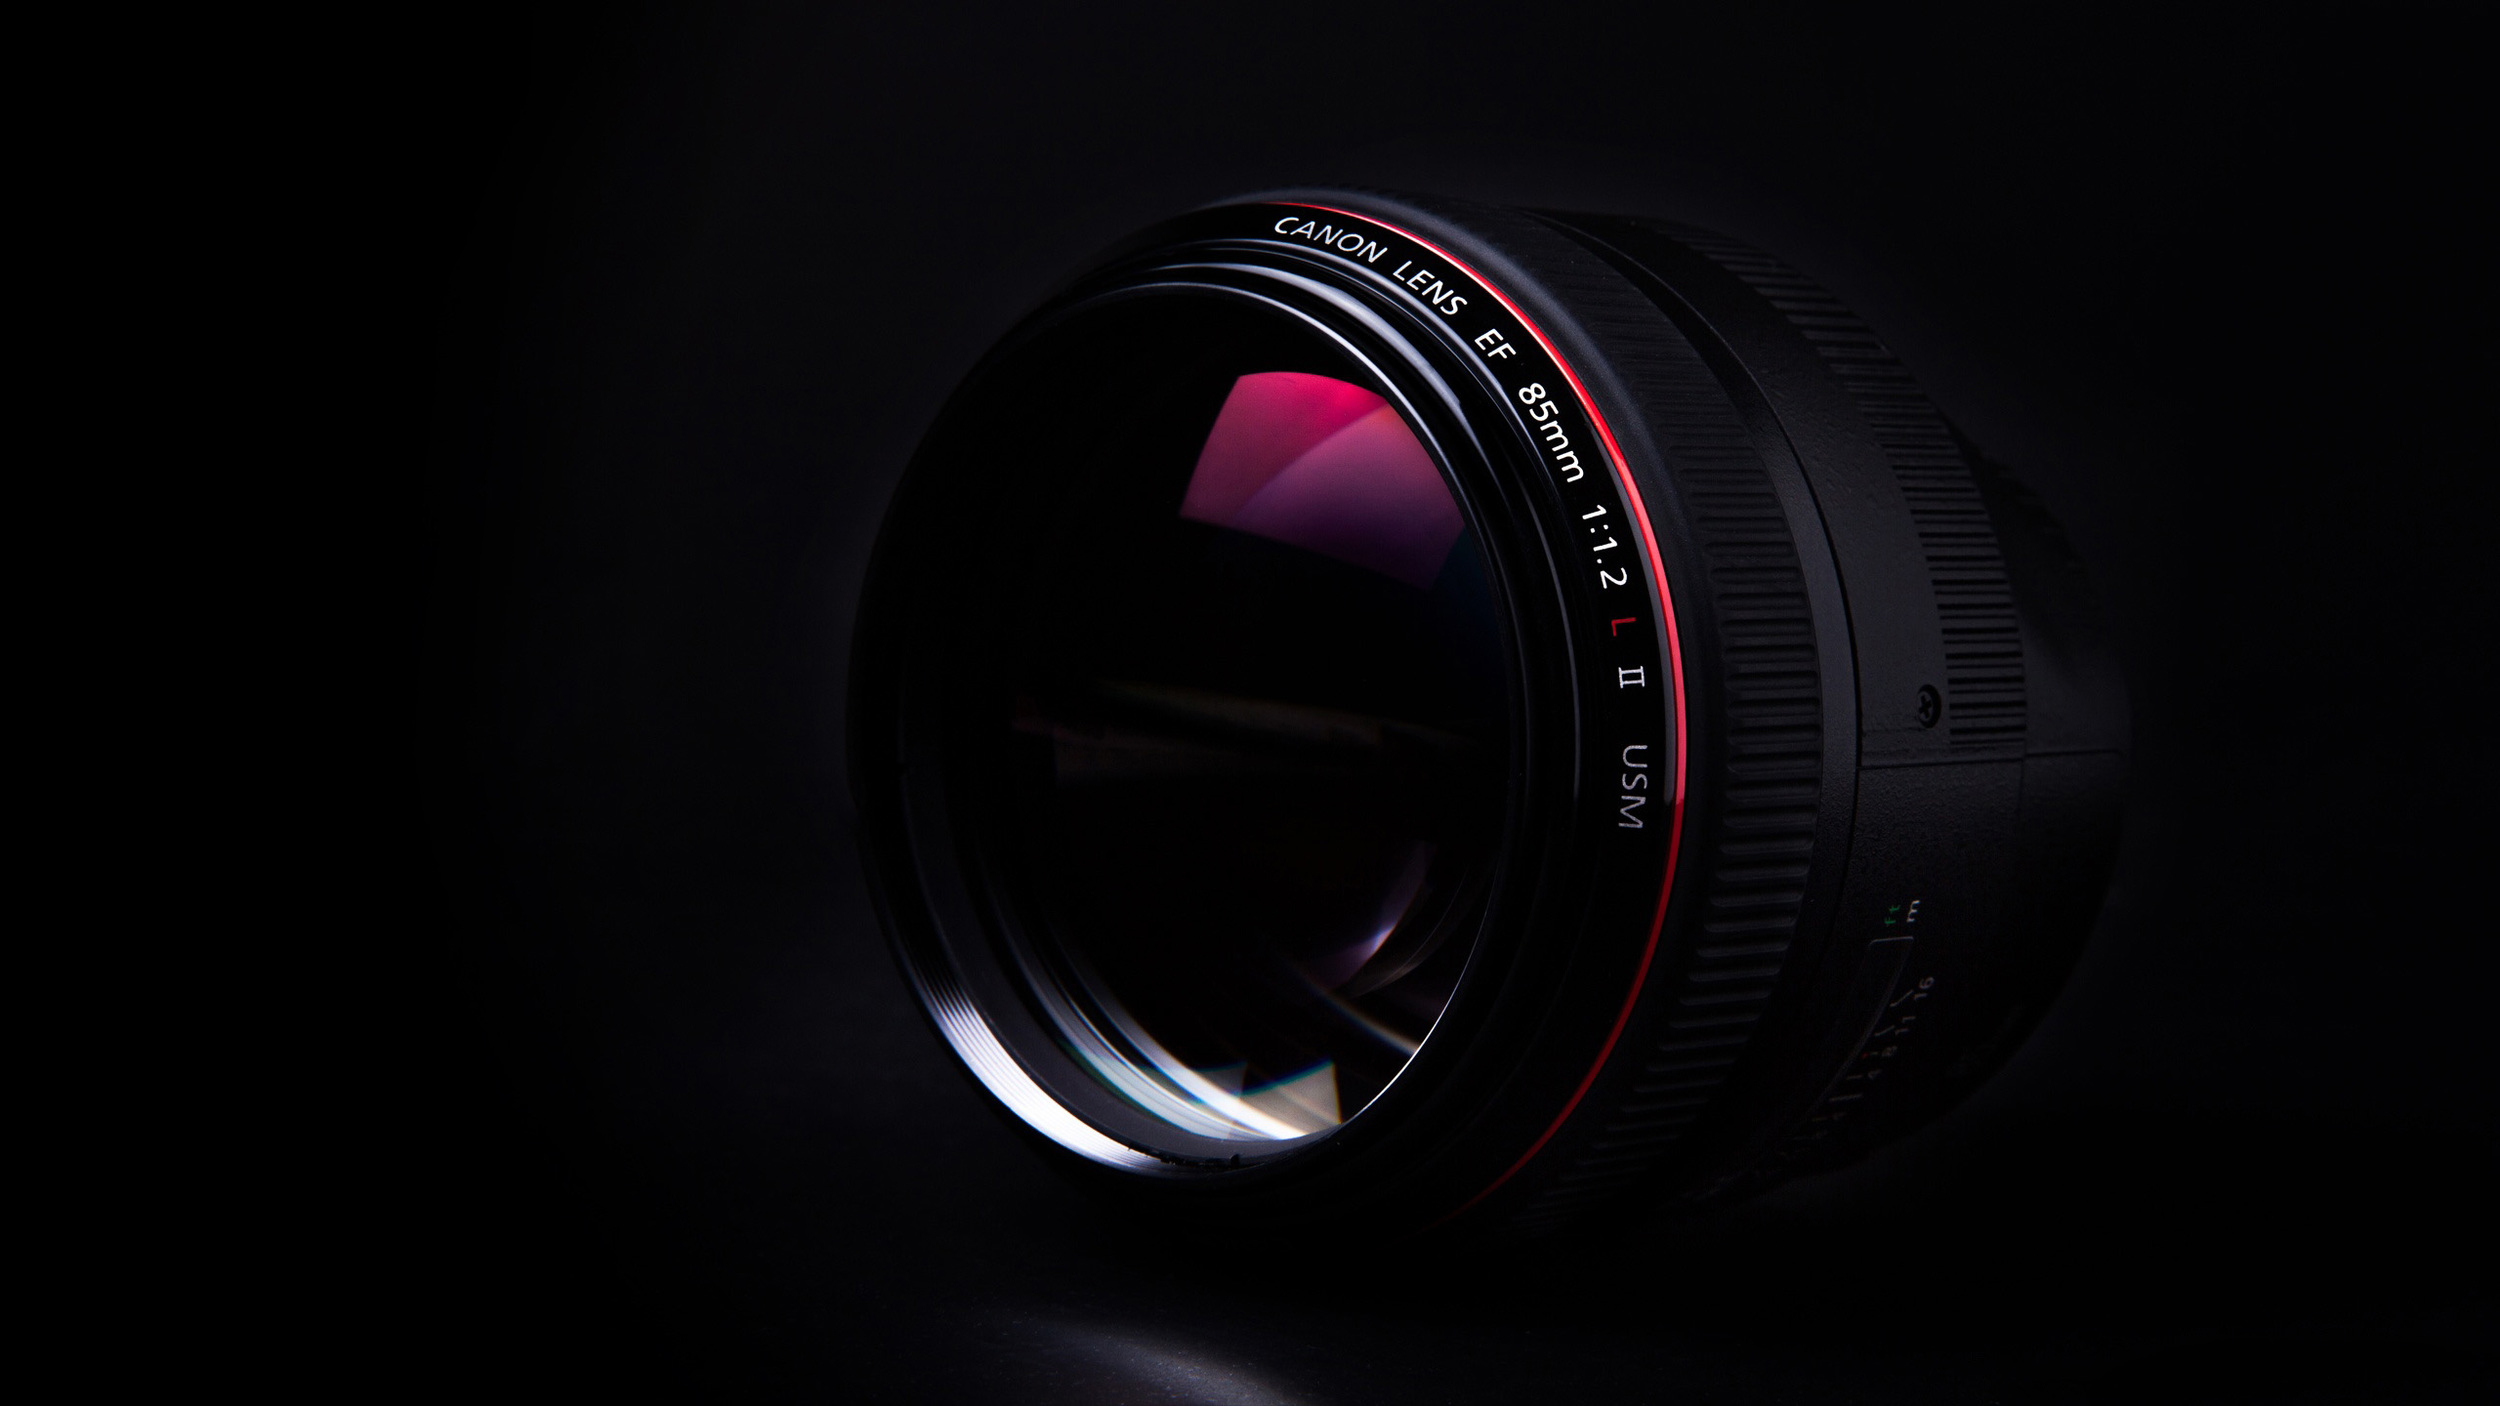 Beautiful DJD Canon lens on black background